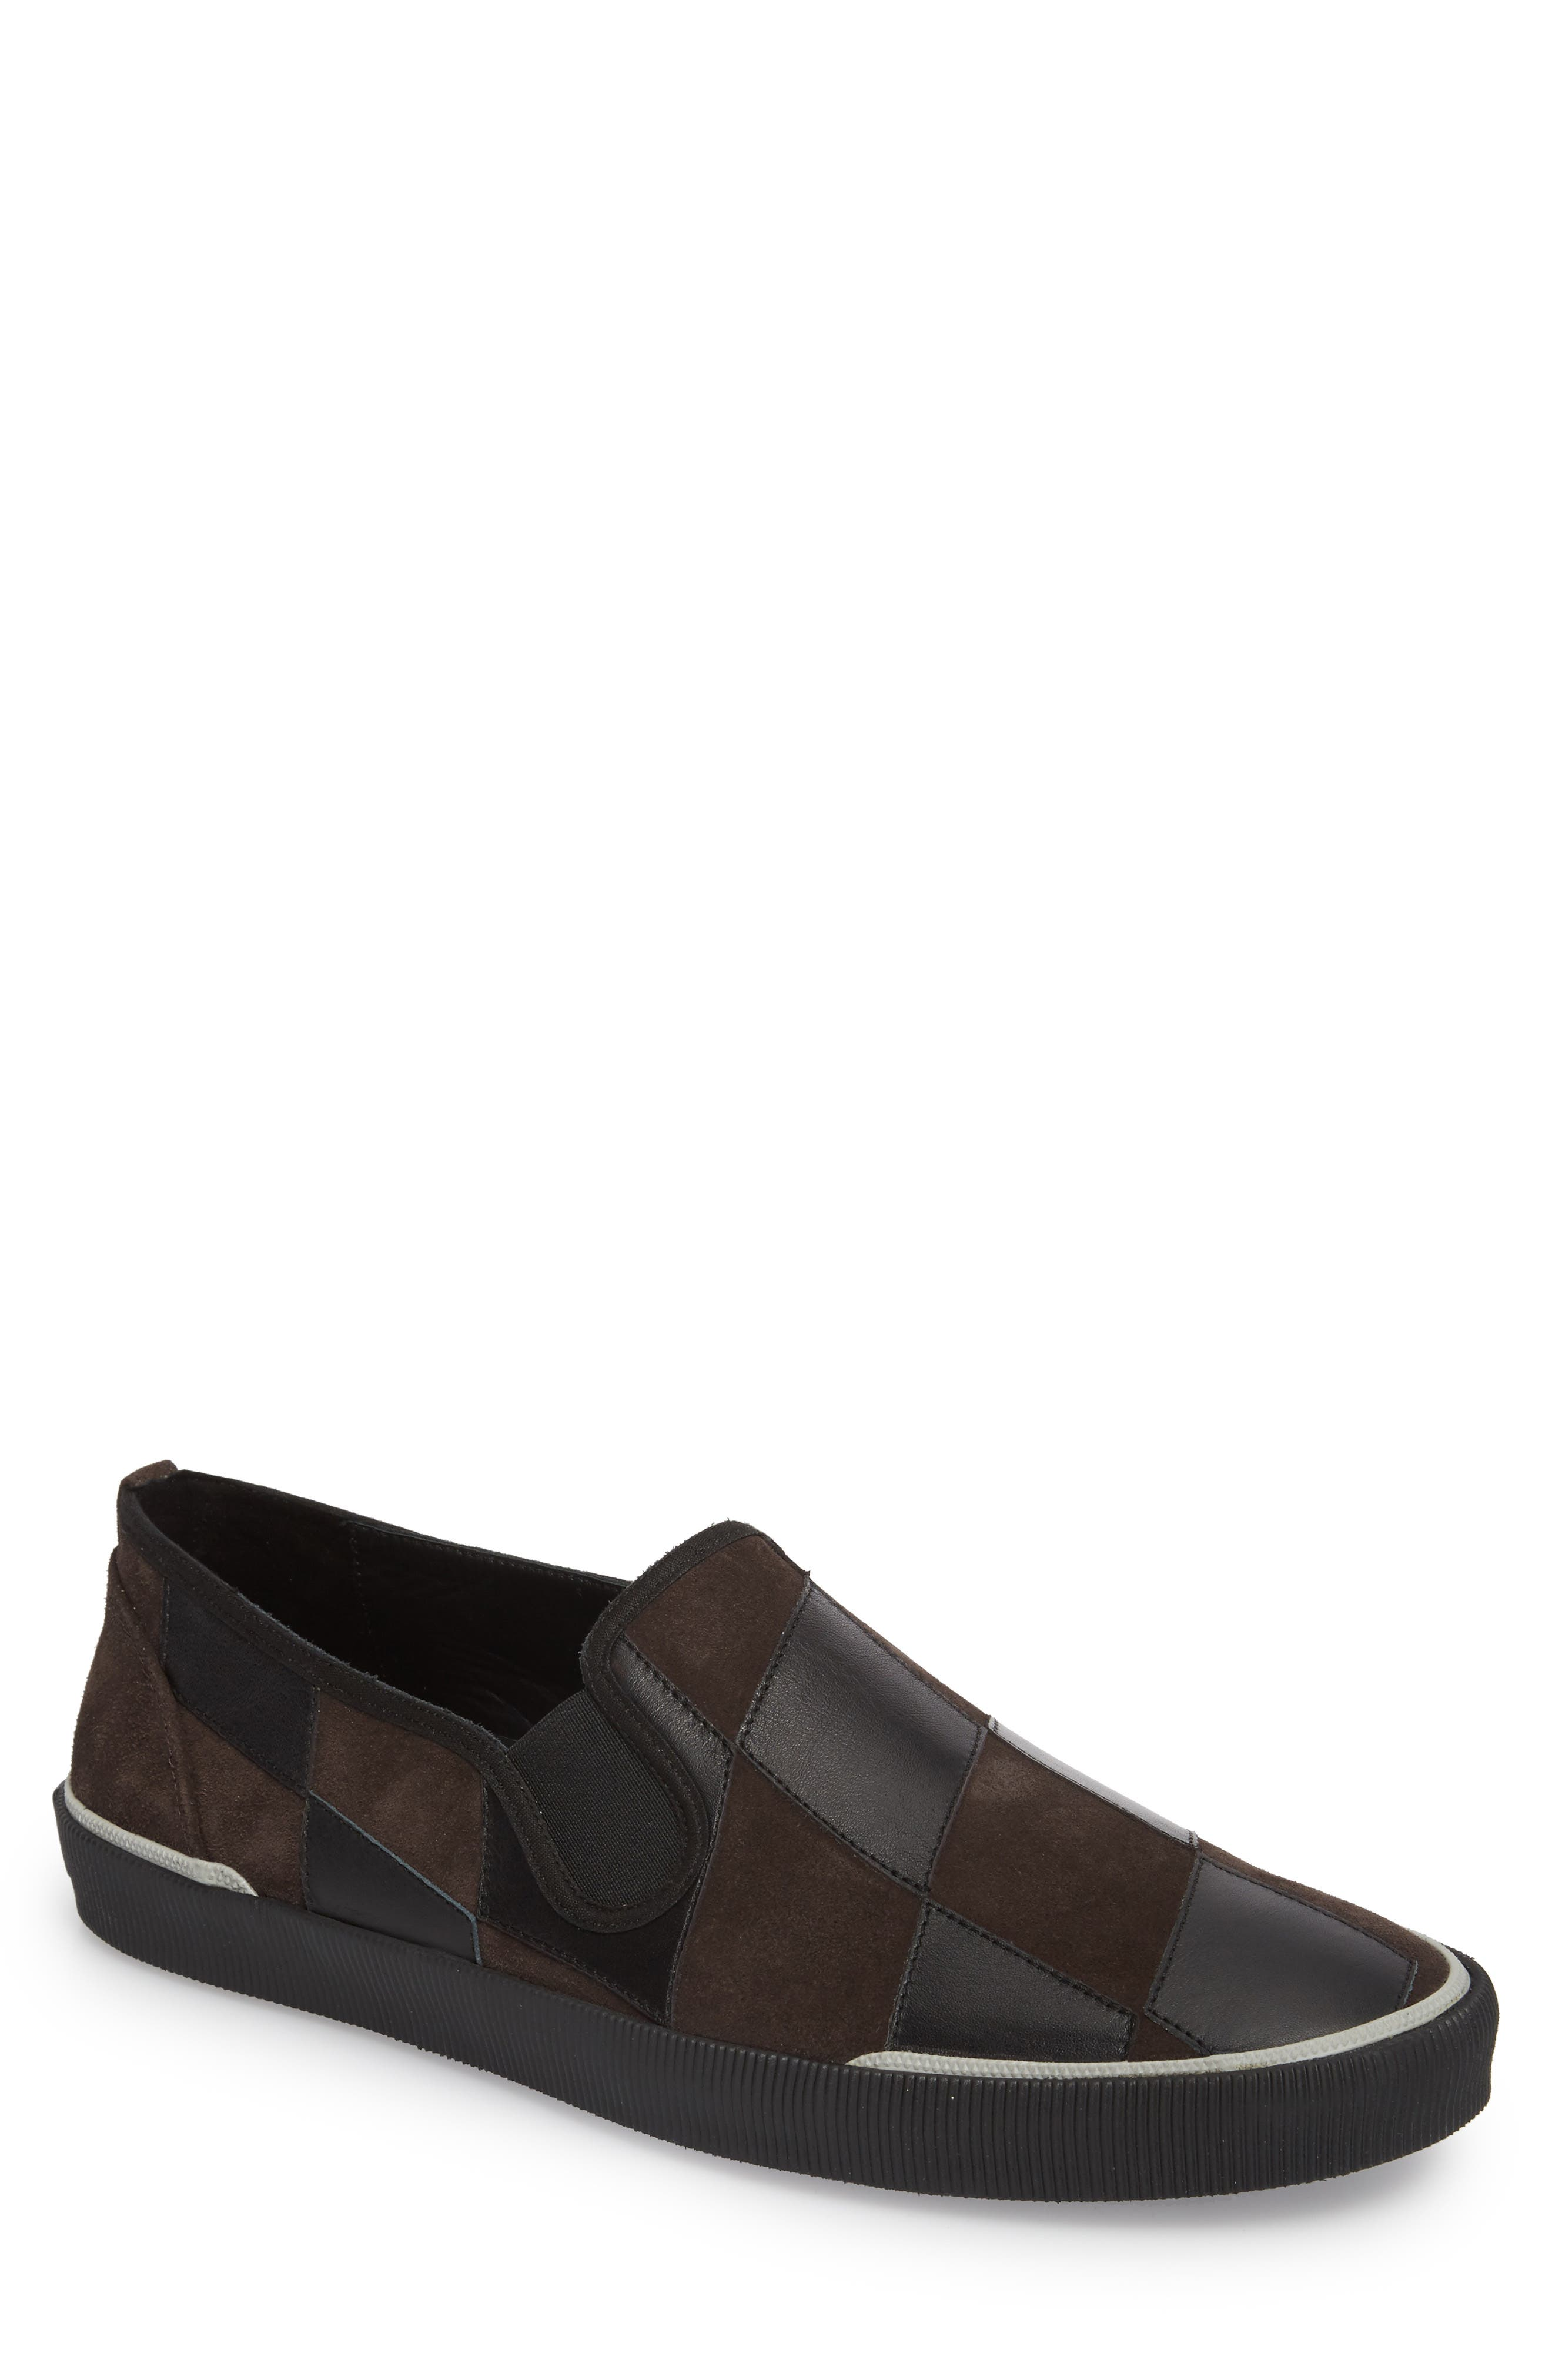 Diamond Patchwork Slip-On Sneaker,                         Main,                         color, Taupe/ Black Leather/ Suede